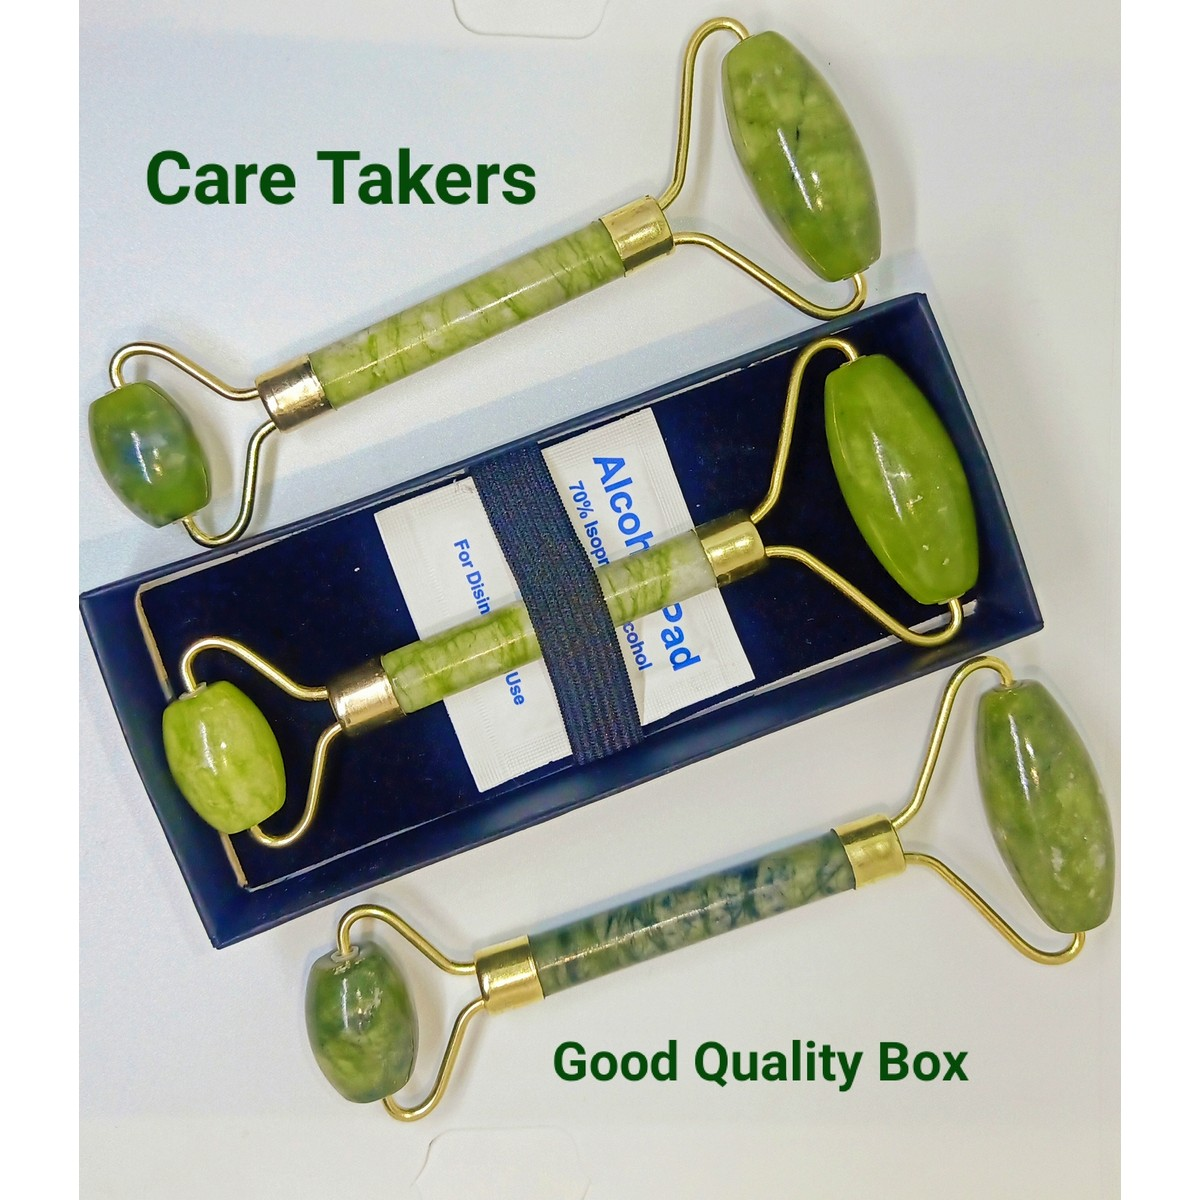 Jade Roller for Face - Face & Neck Massager for Skin Care, Facial Roller to Press Cream and Oil, Lymphatic Drainage Massager Skin Care Tool, Eye Massager and Neck Roller With Box